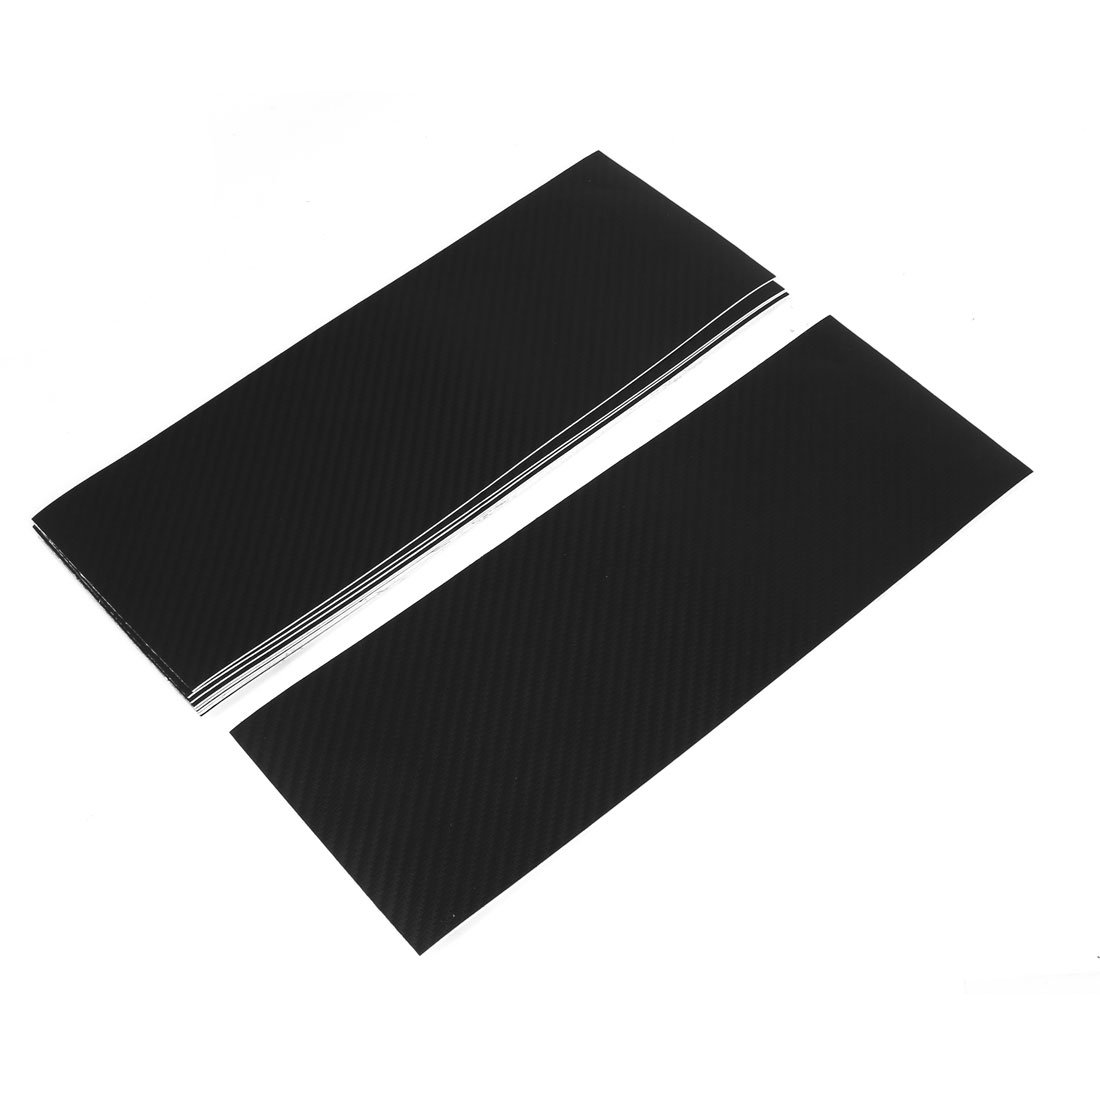 10pcs 300 x 107mm Self Adhesive Carbon Fiber Protective Film Sticker Black for Car